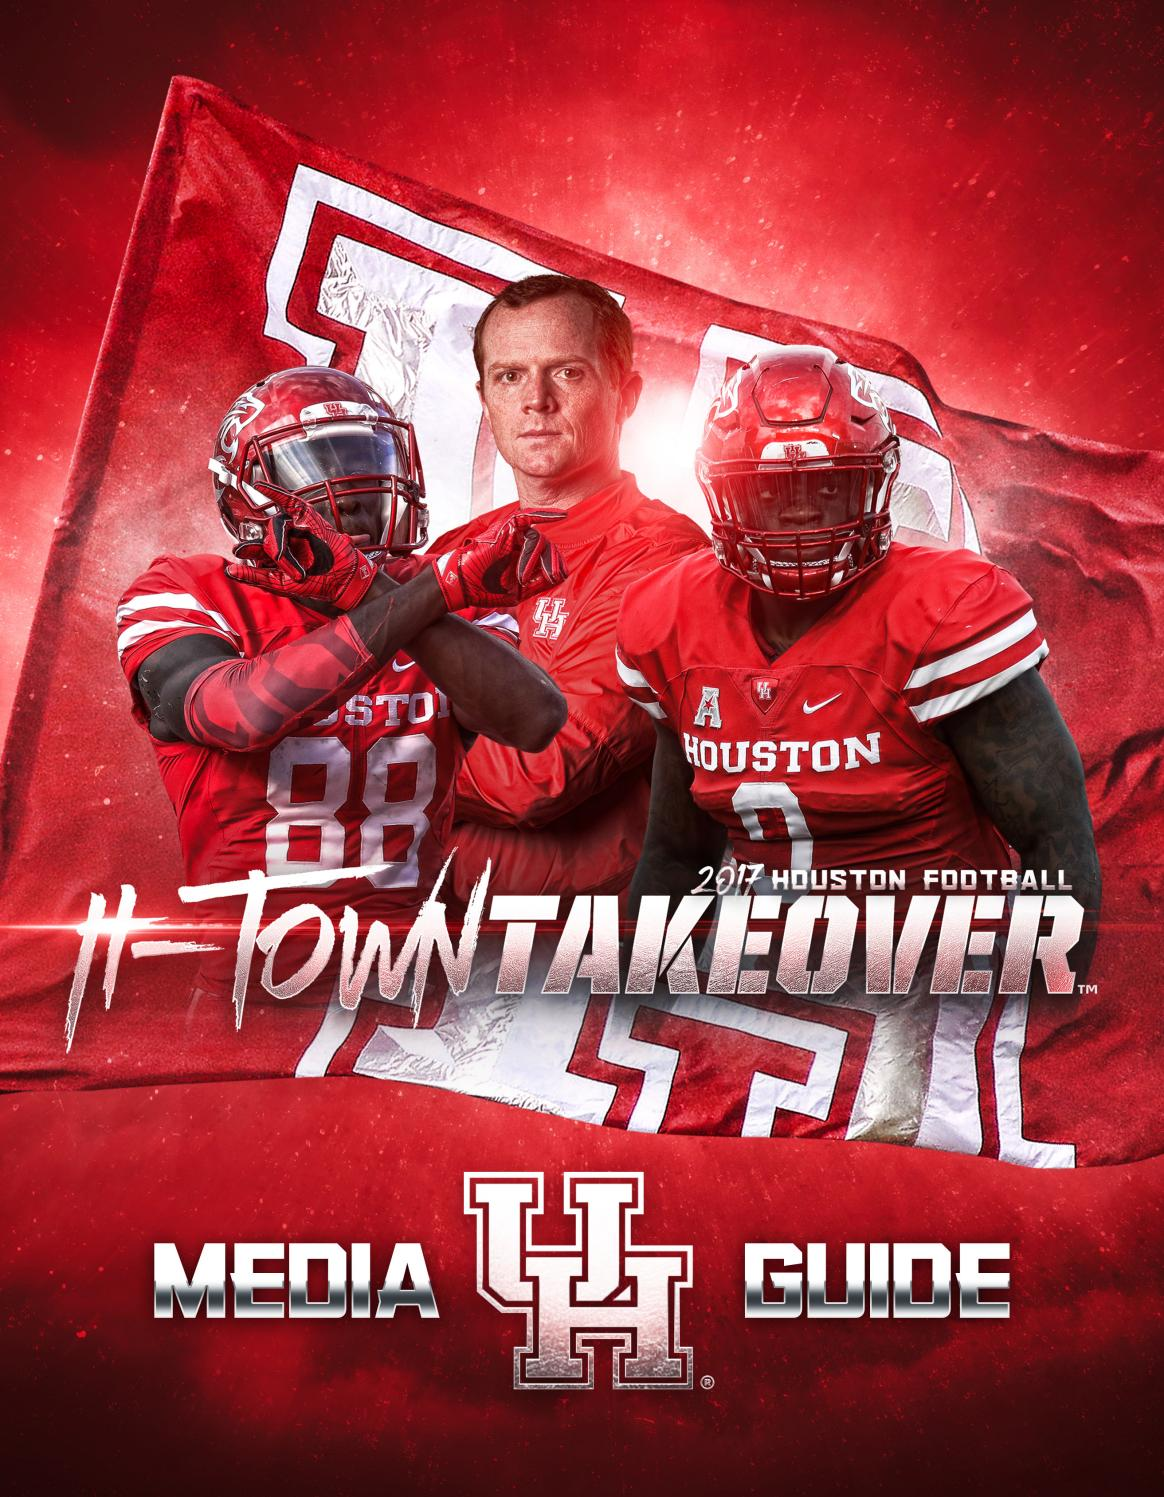 f163e01106d 2017 Houston Football Media Guide by David Bassity - issuu